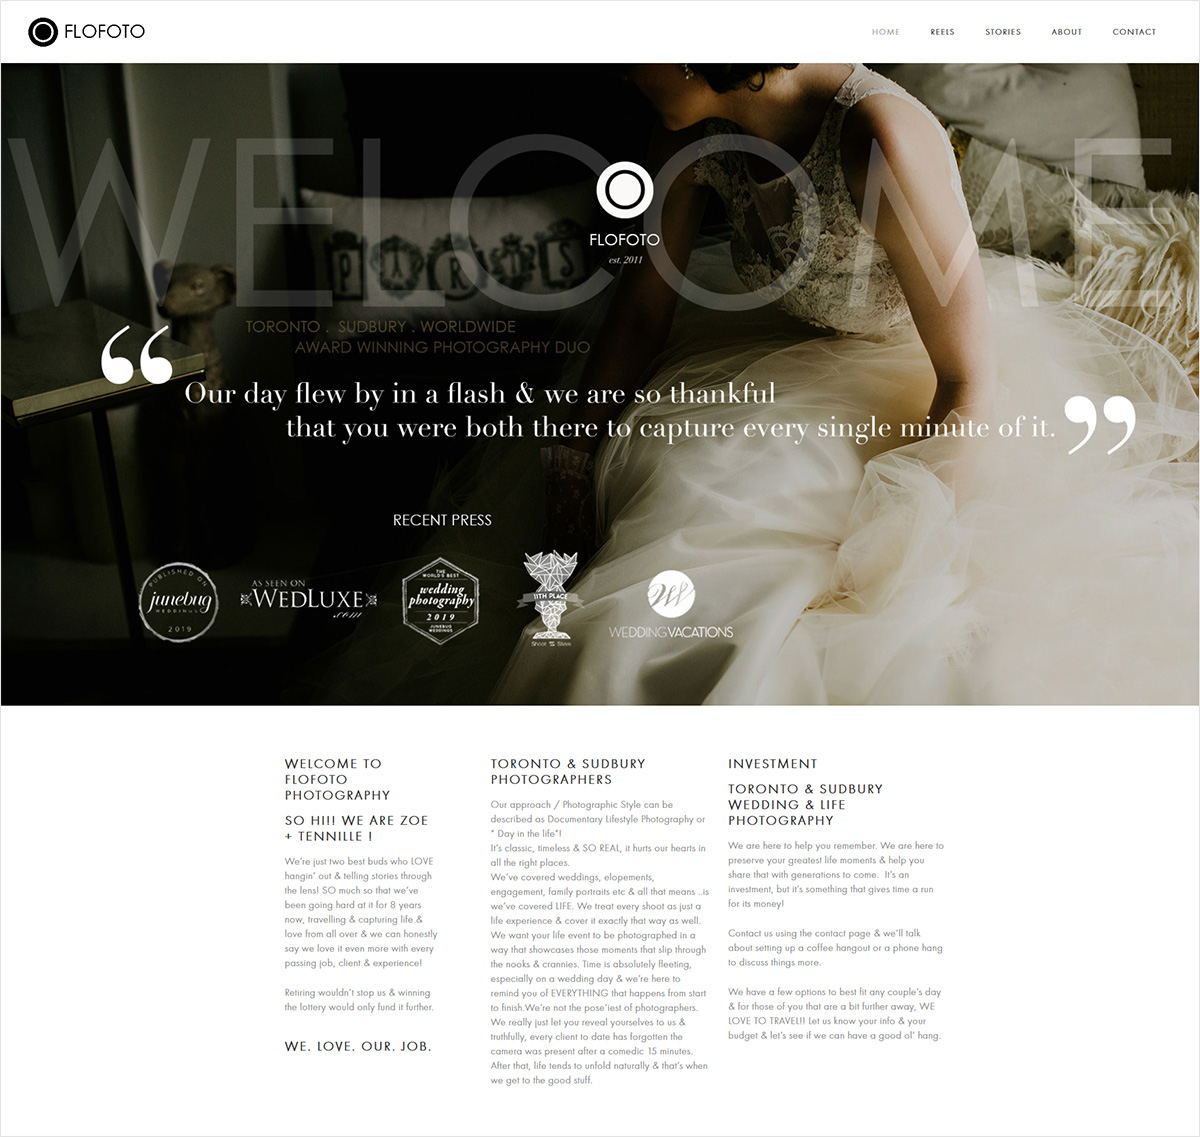 eggs media case study flofoto new website